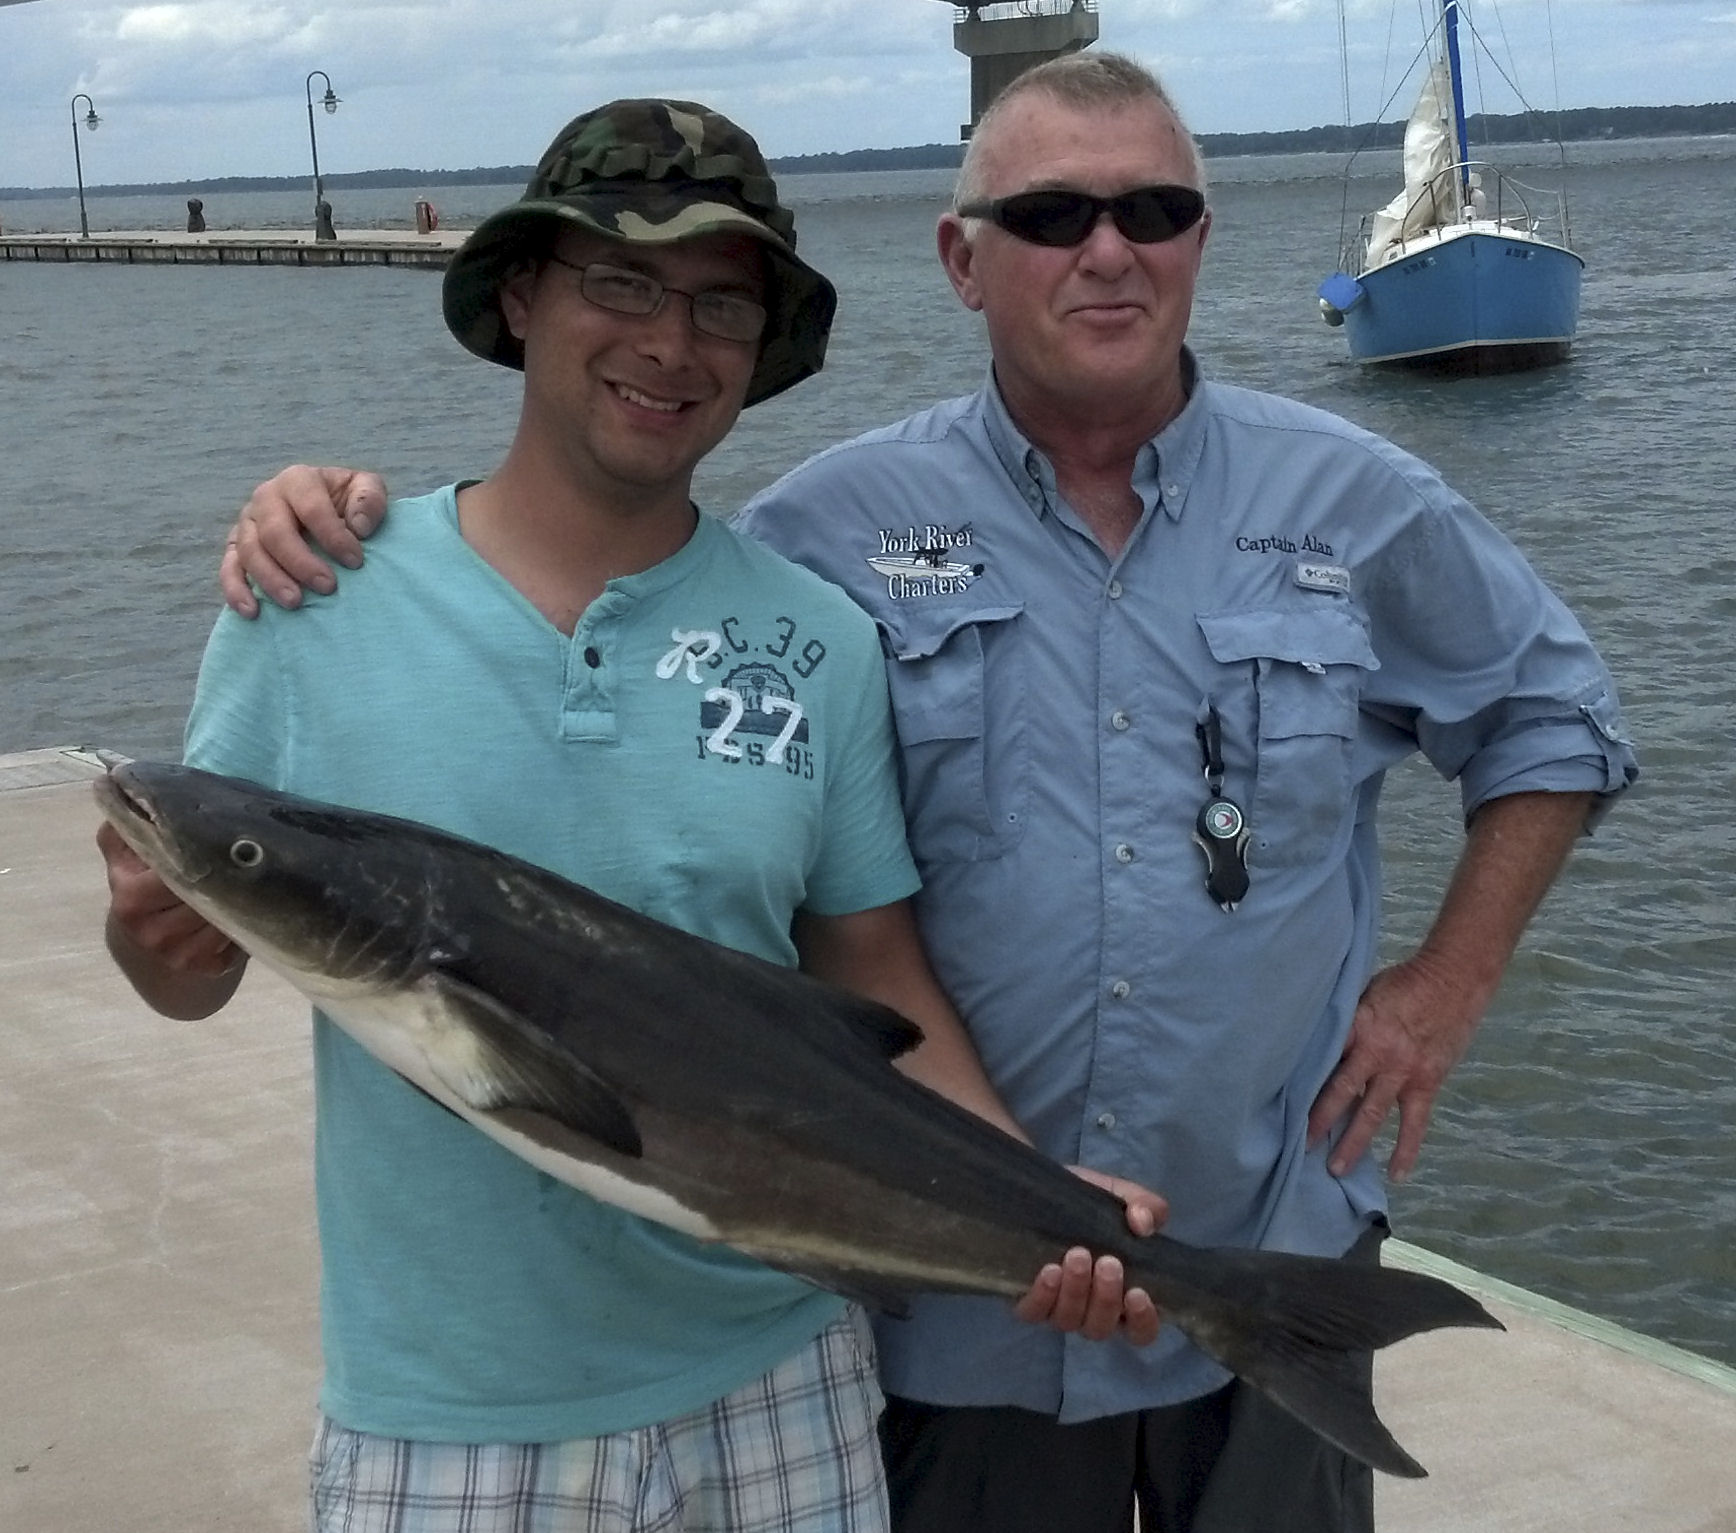 Fishing report michaelcobiame for Middle chesapeake bay fishing report